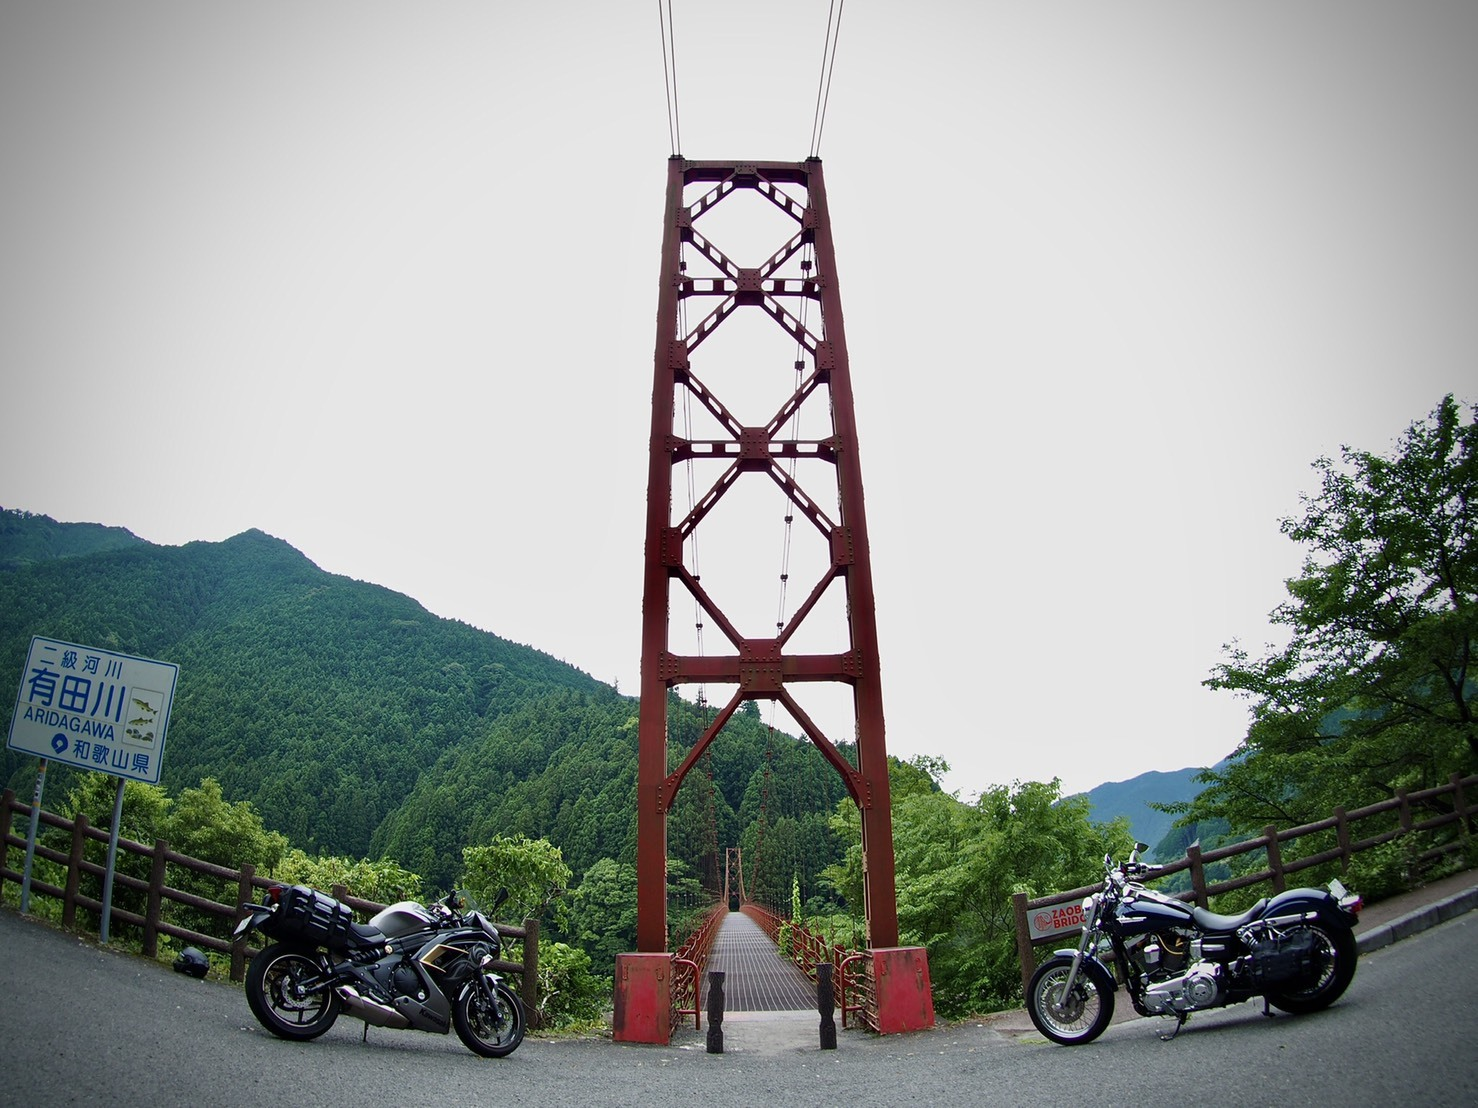 harleydavidson-motorcycle-touring-blog-wakayama-arita-zaoubashi-bridge-suspensionbridge-ninja.jpg